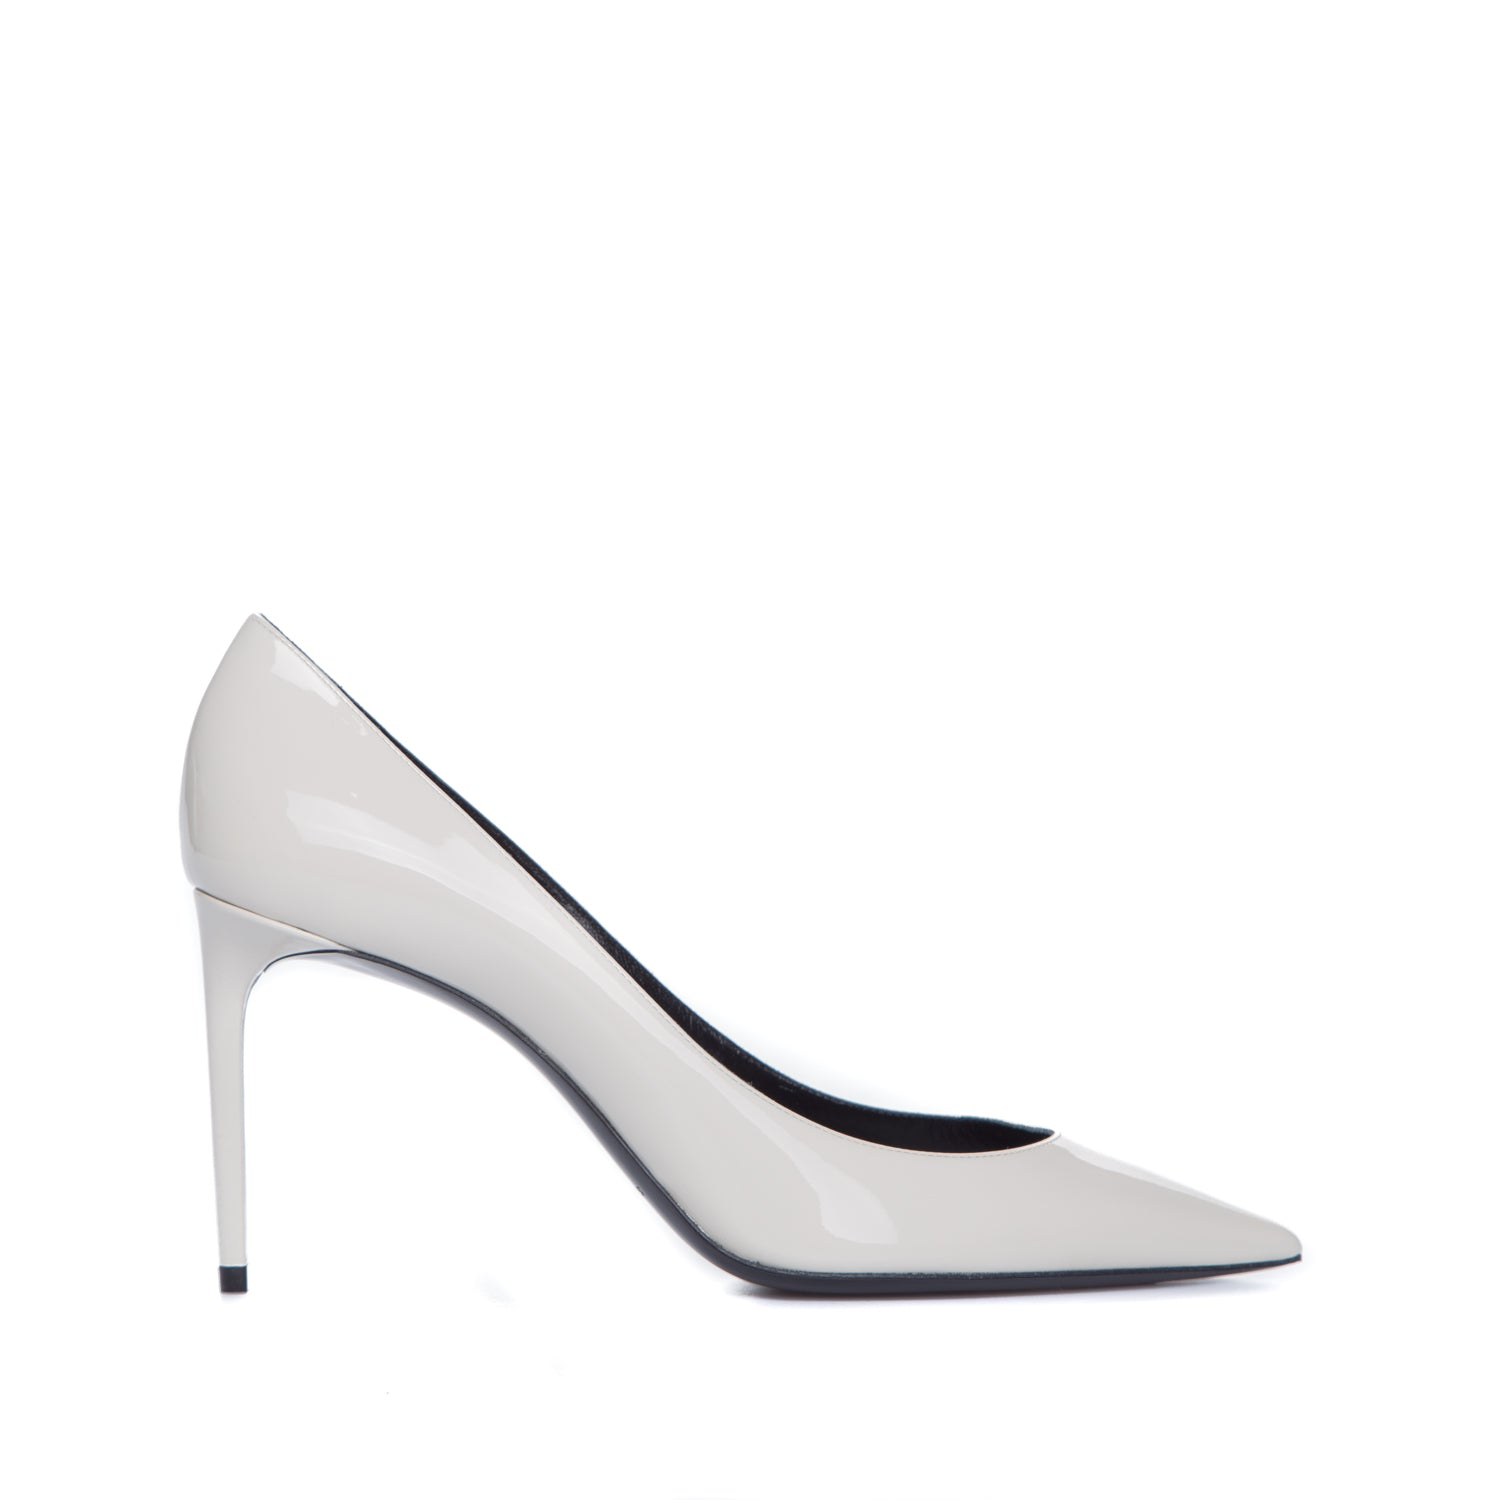 Patent Leather Pumps-YVES SAINT LAURENT-SHOPATVOI.COM - Luxury Fashion Designer